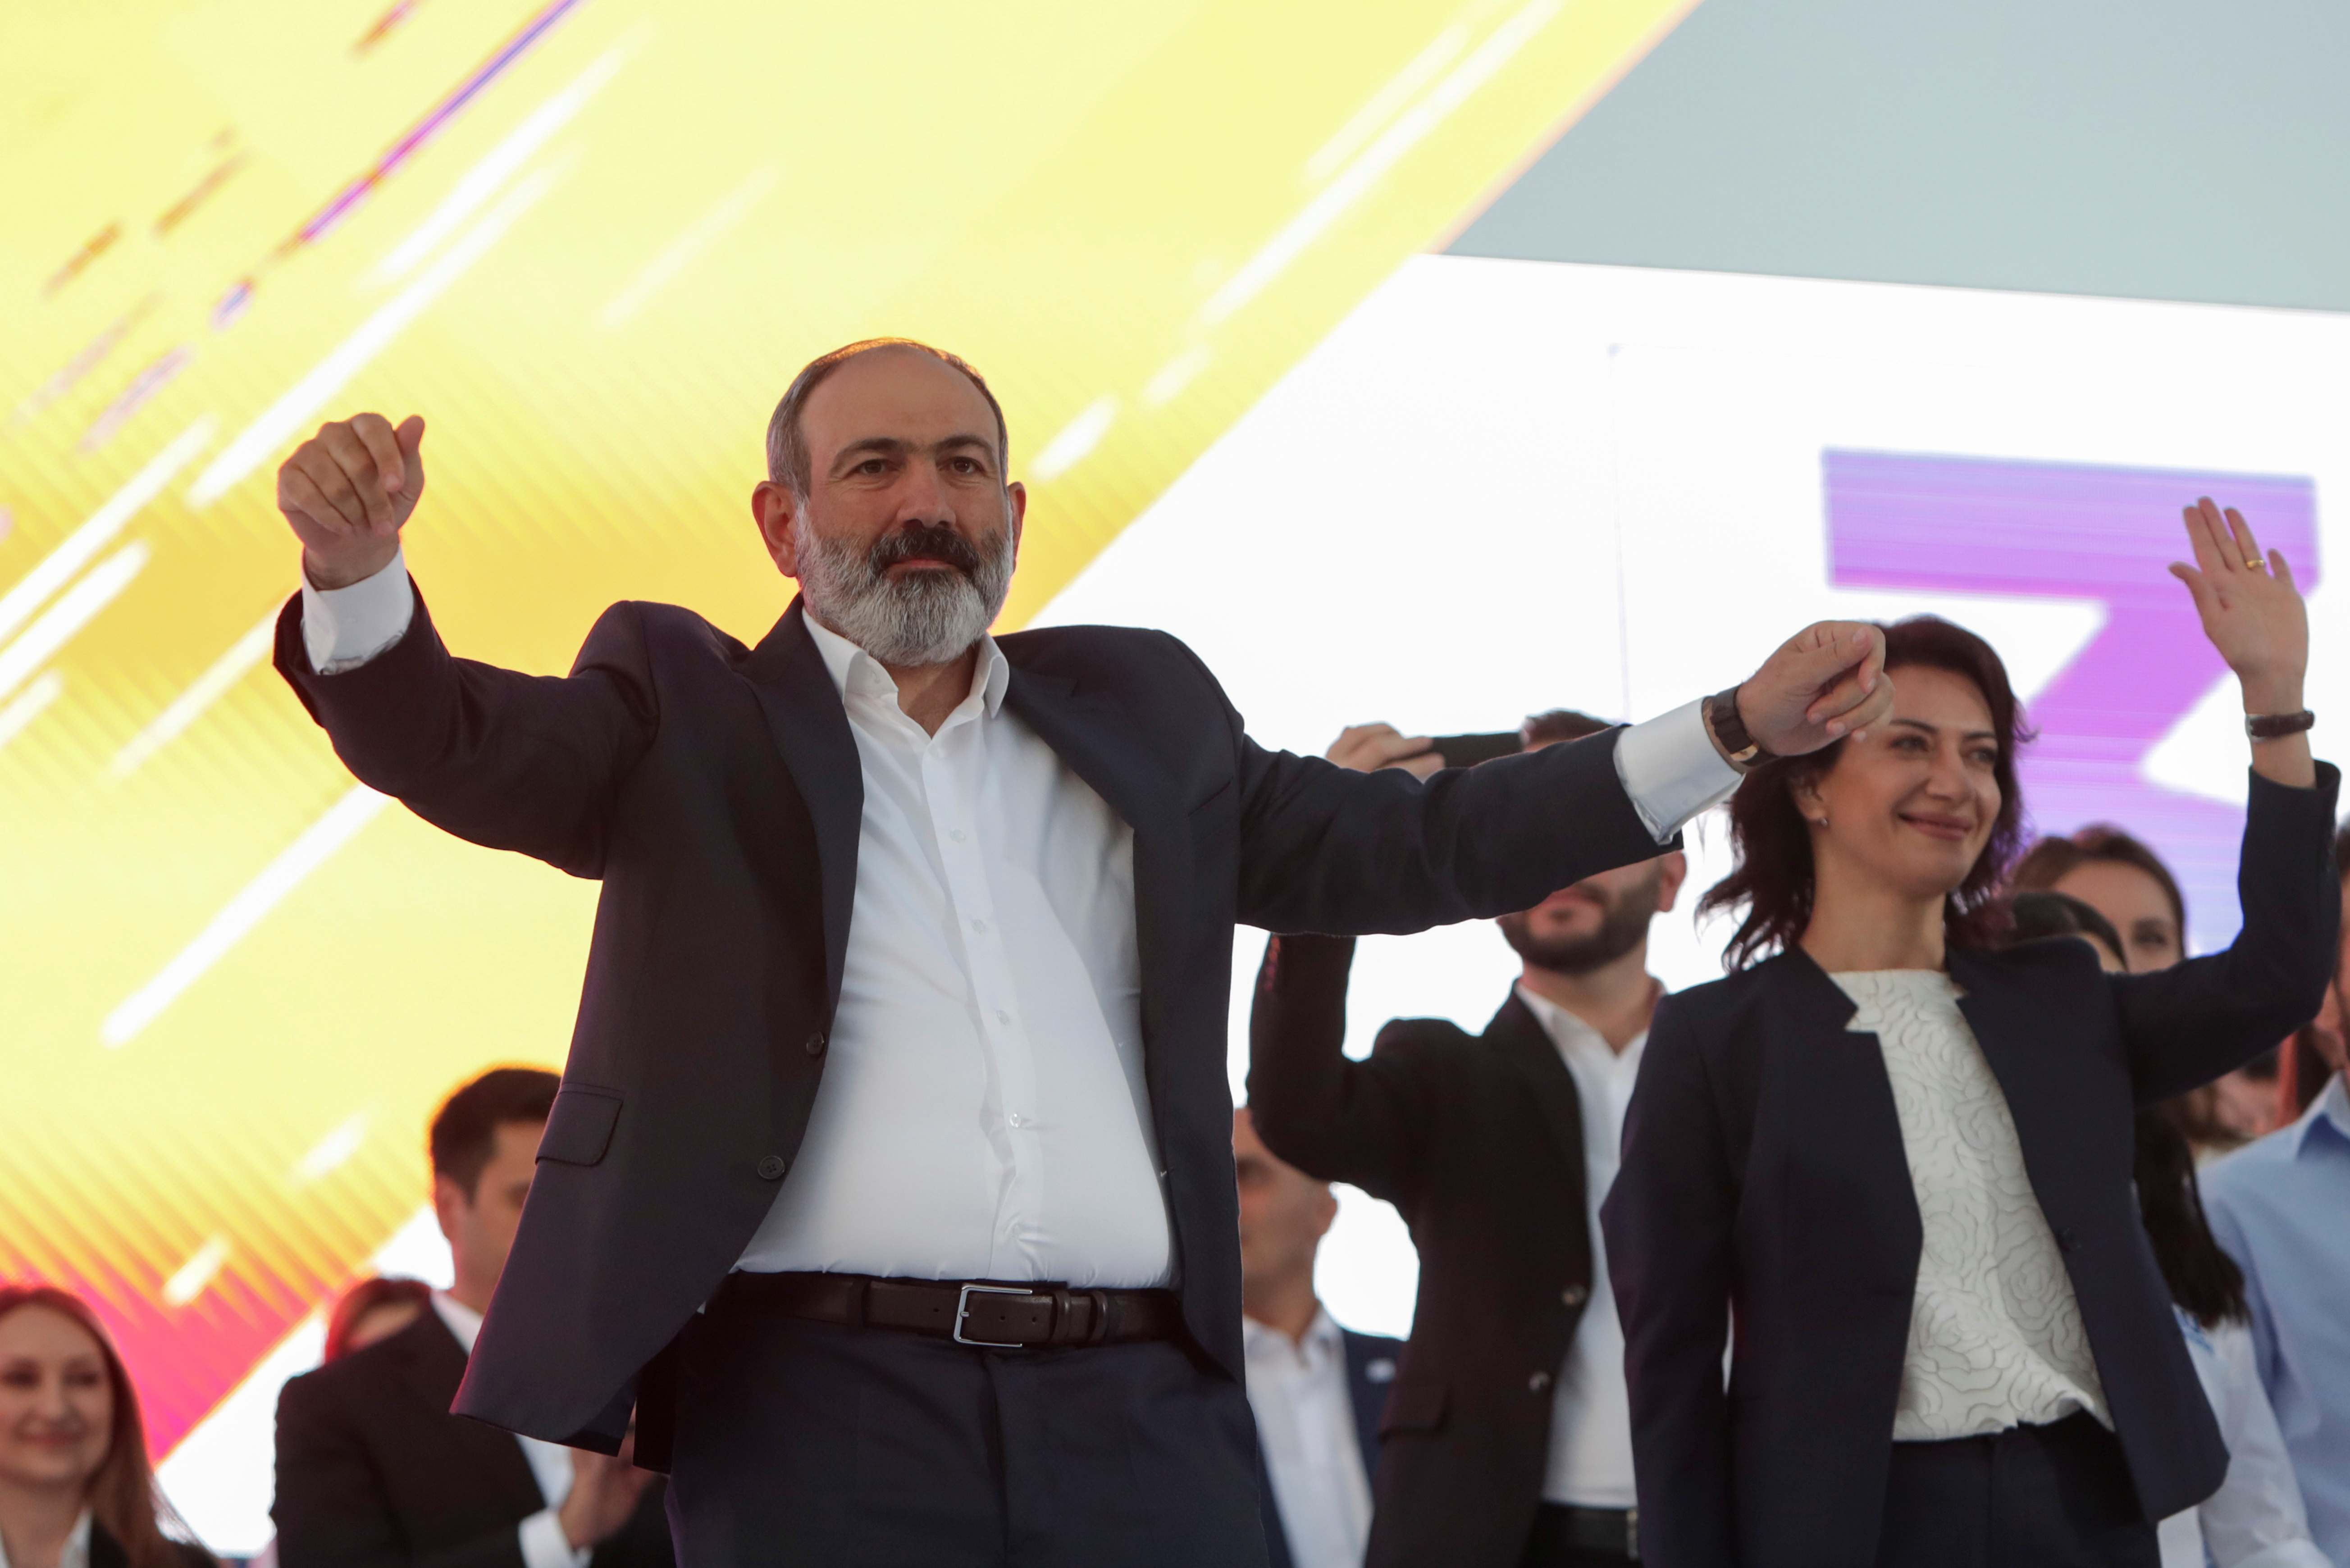 Armenia's acting Prime Minister and leader of Civil Contract party Nikol Pashinyan attends a campaign rally ahead of the upcoming snap parliamentary election in Yerevan, Armenia June 17, 2021. Vahram Baghdasaryan/Photolure via REUTERS